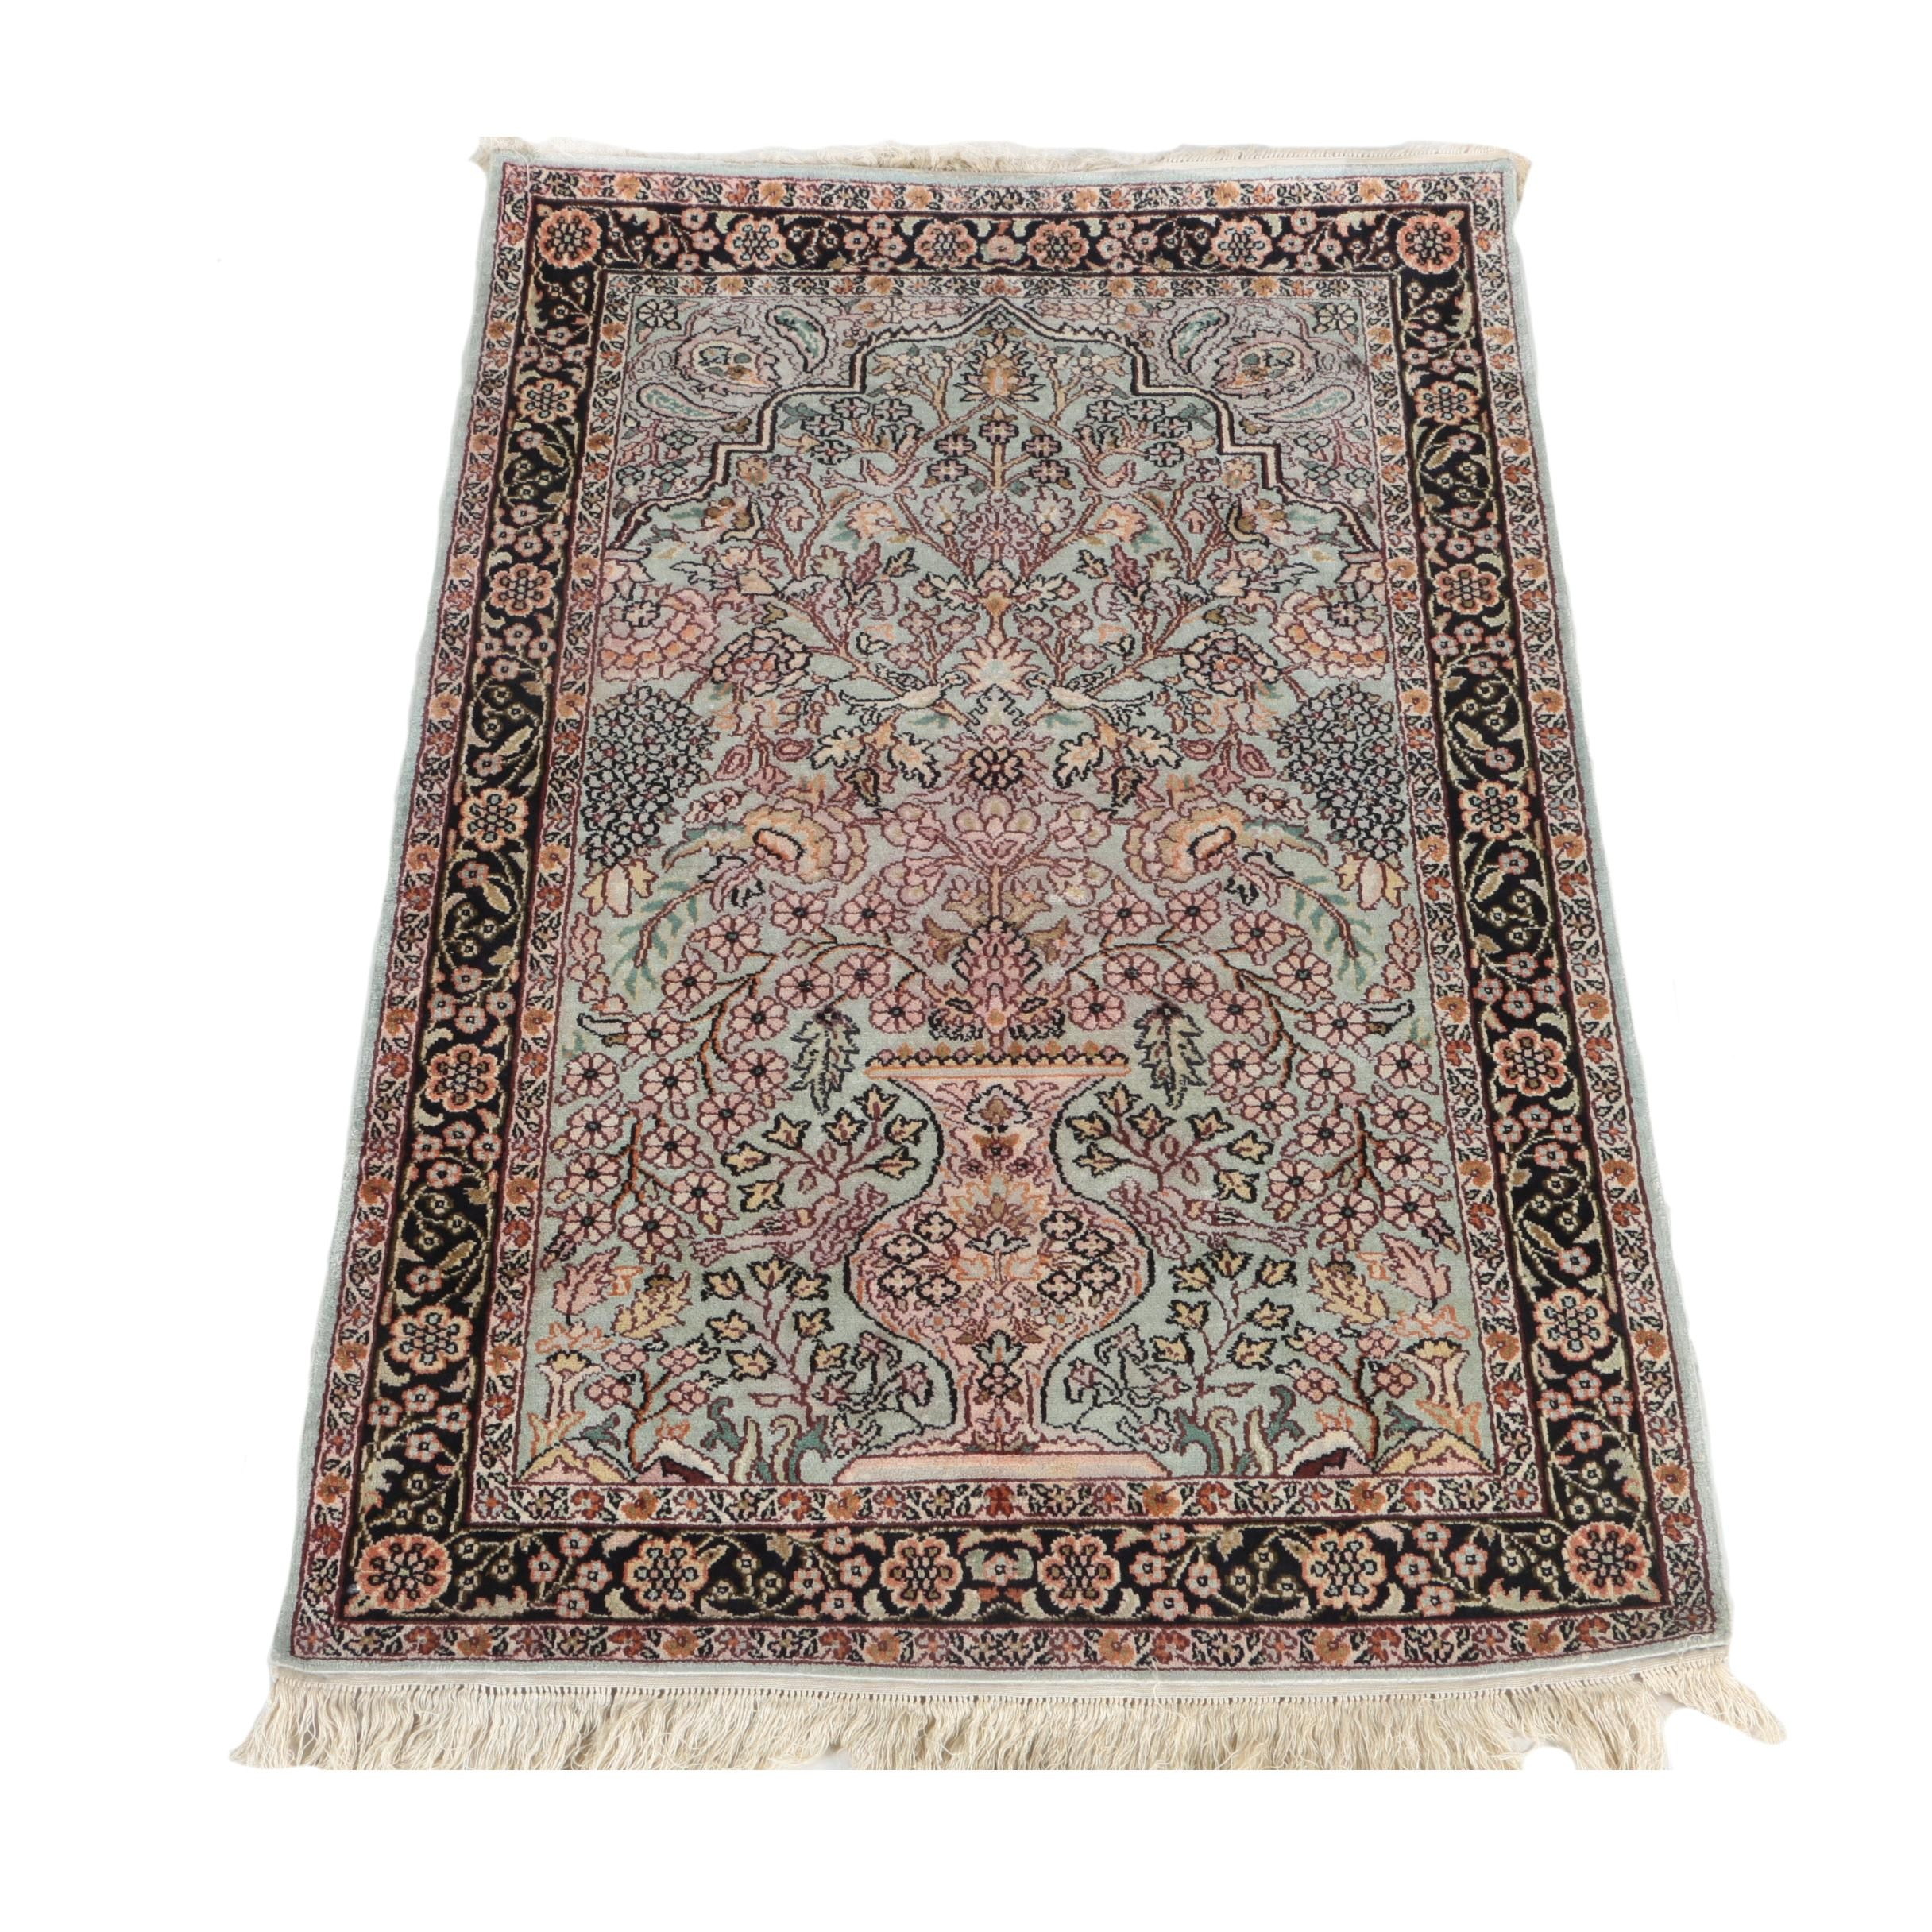 Hand-Knotted Indo-Persian Art Silk Kerman-Style Prayer Rug